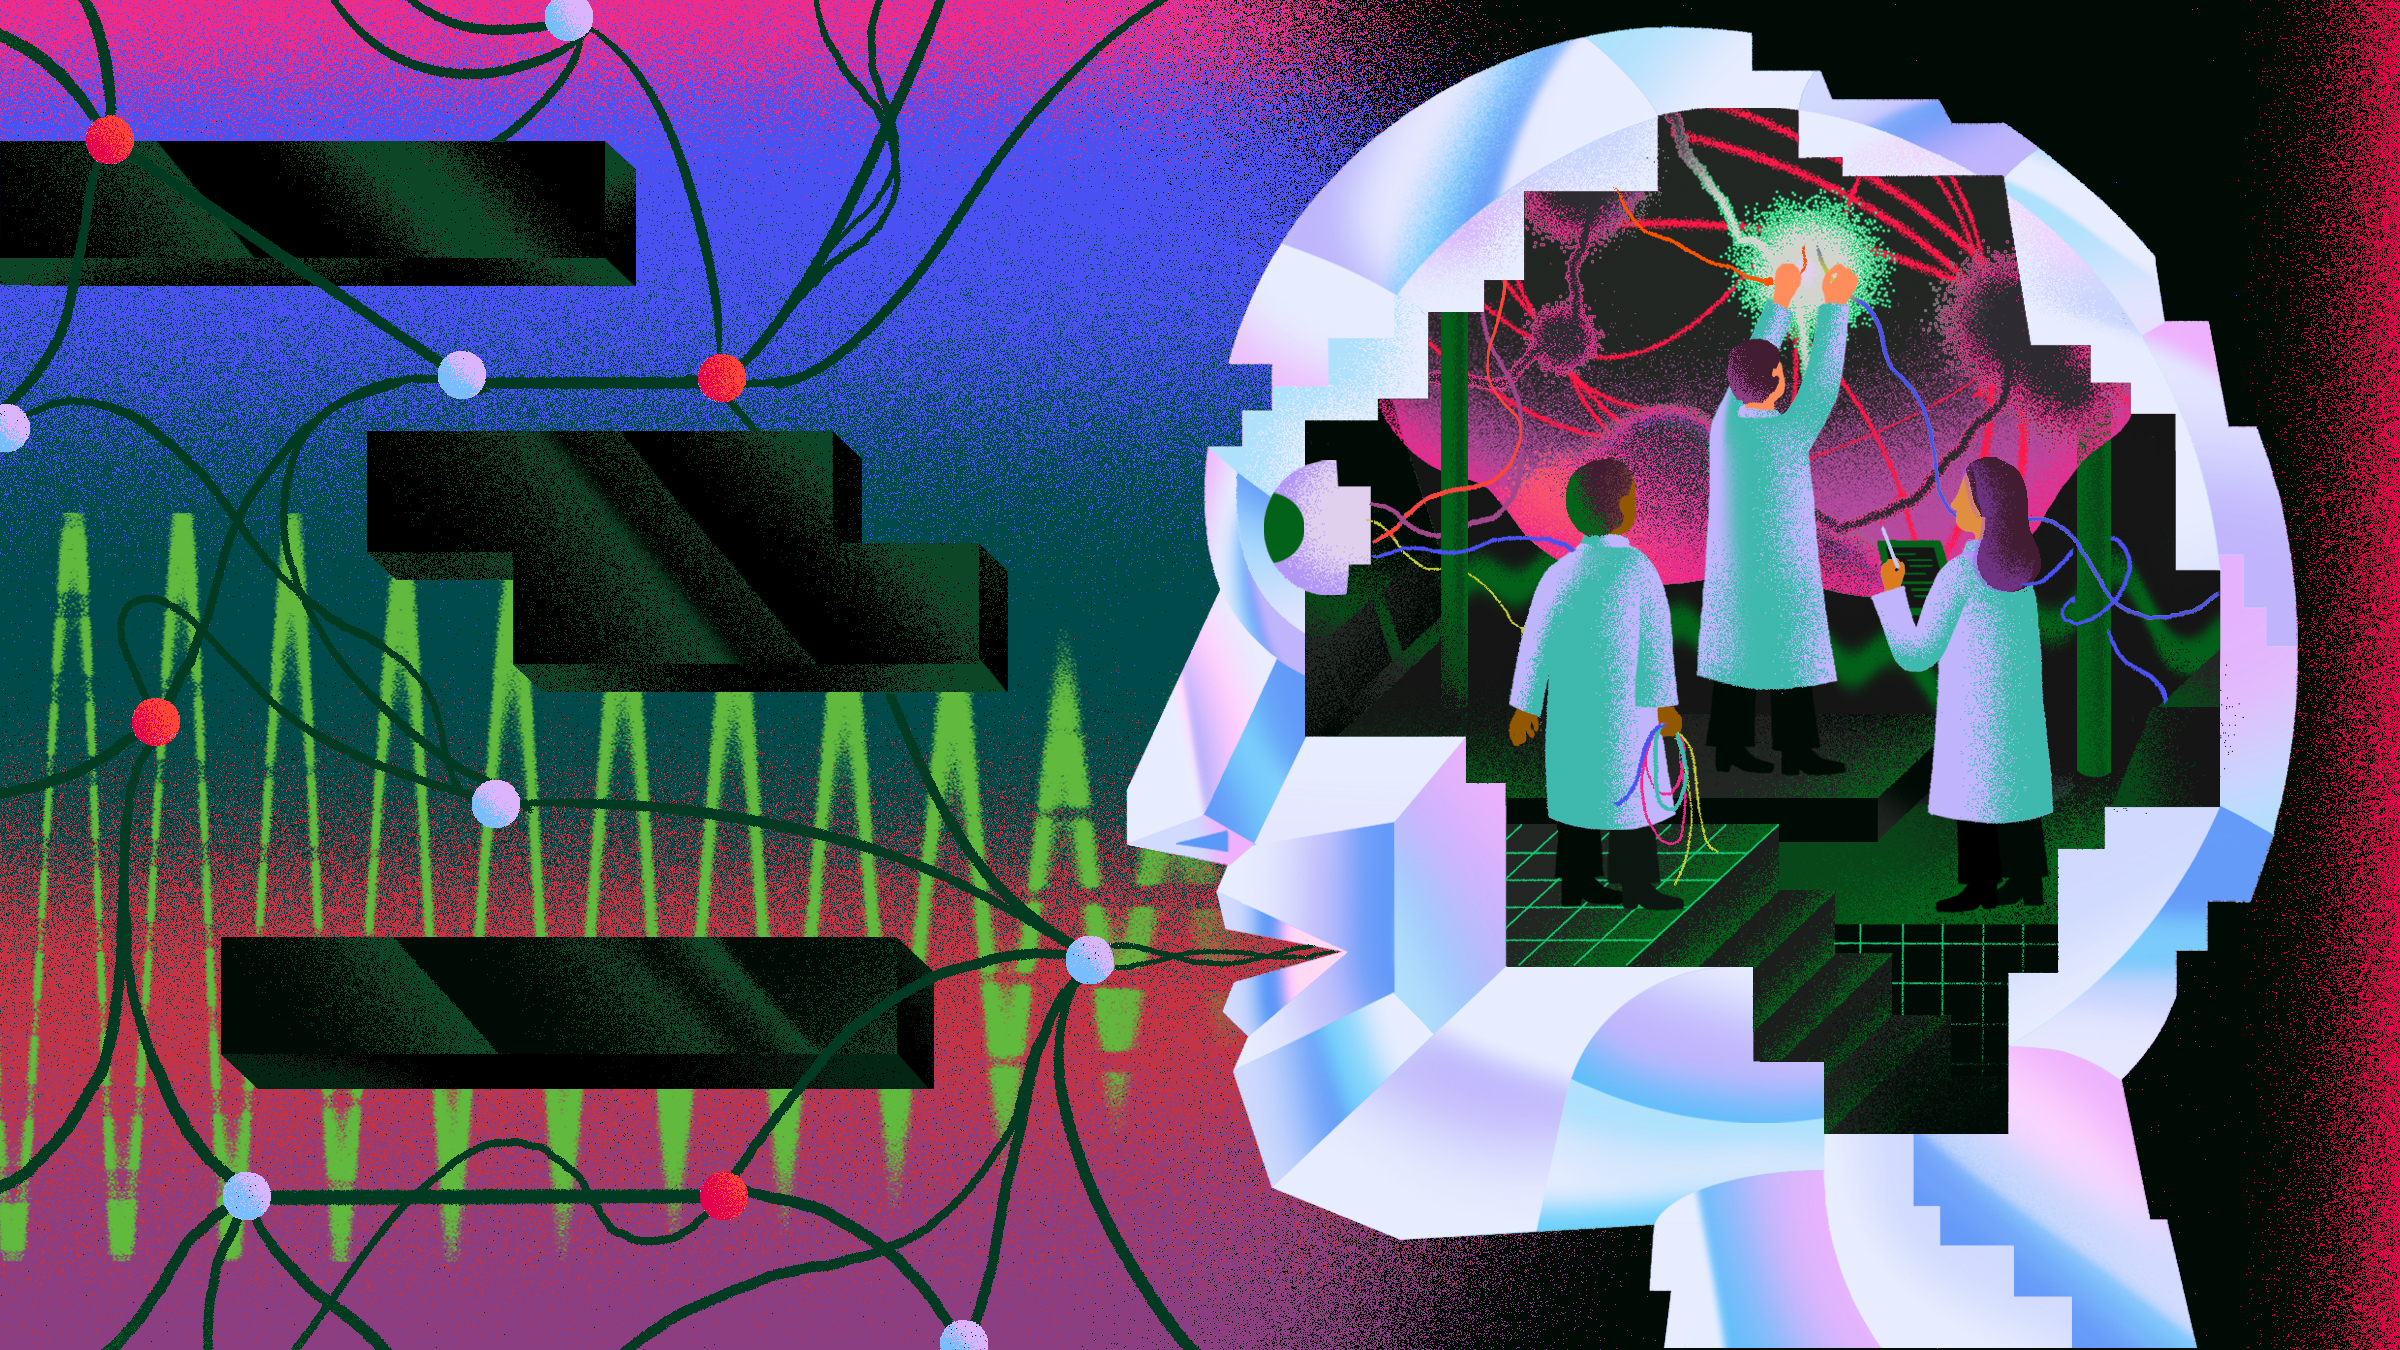 conceptual illustration or a brain with 3 scientists inside it